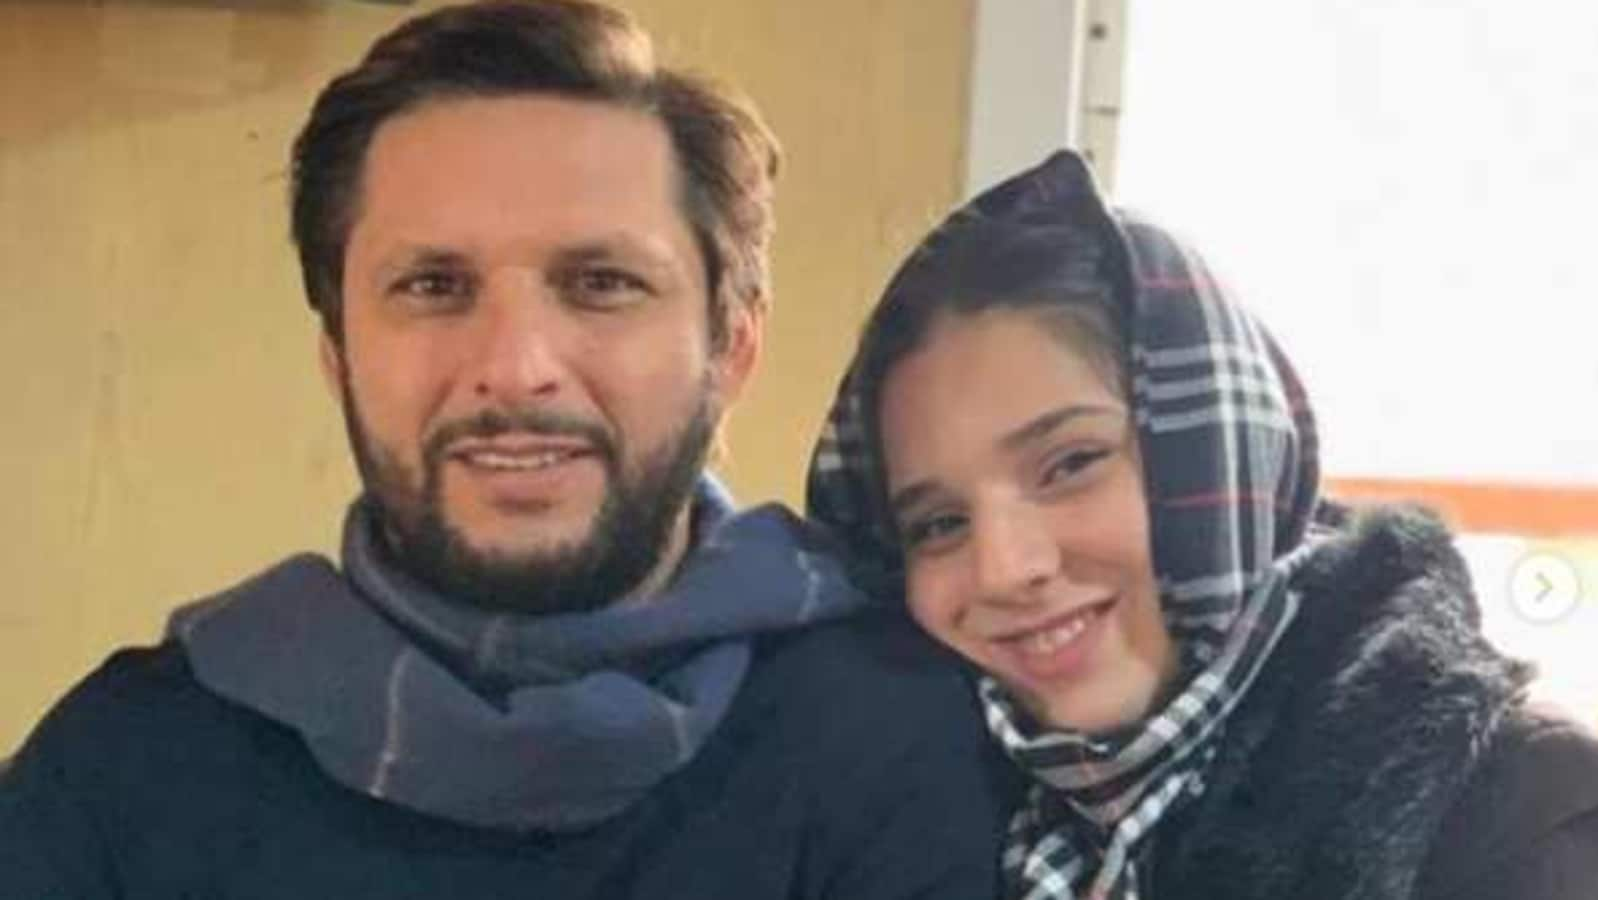 'Matches made in heaven': Shahid Afridi tweets to confirm daughter's engagement with Pakistan pacer Shaheen Shah Afridi - Hindustan Times